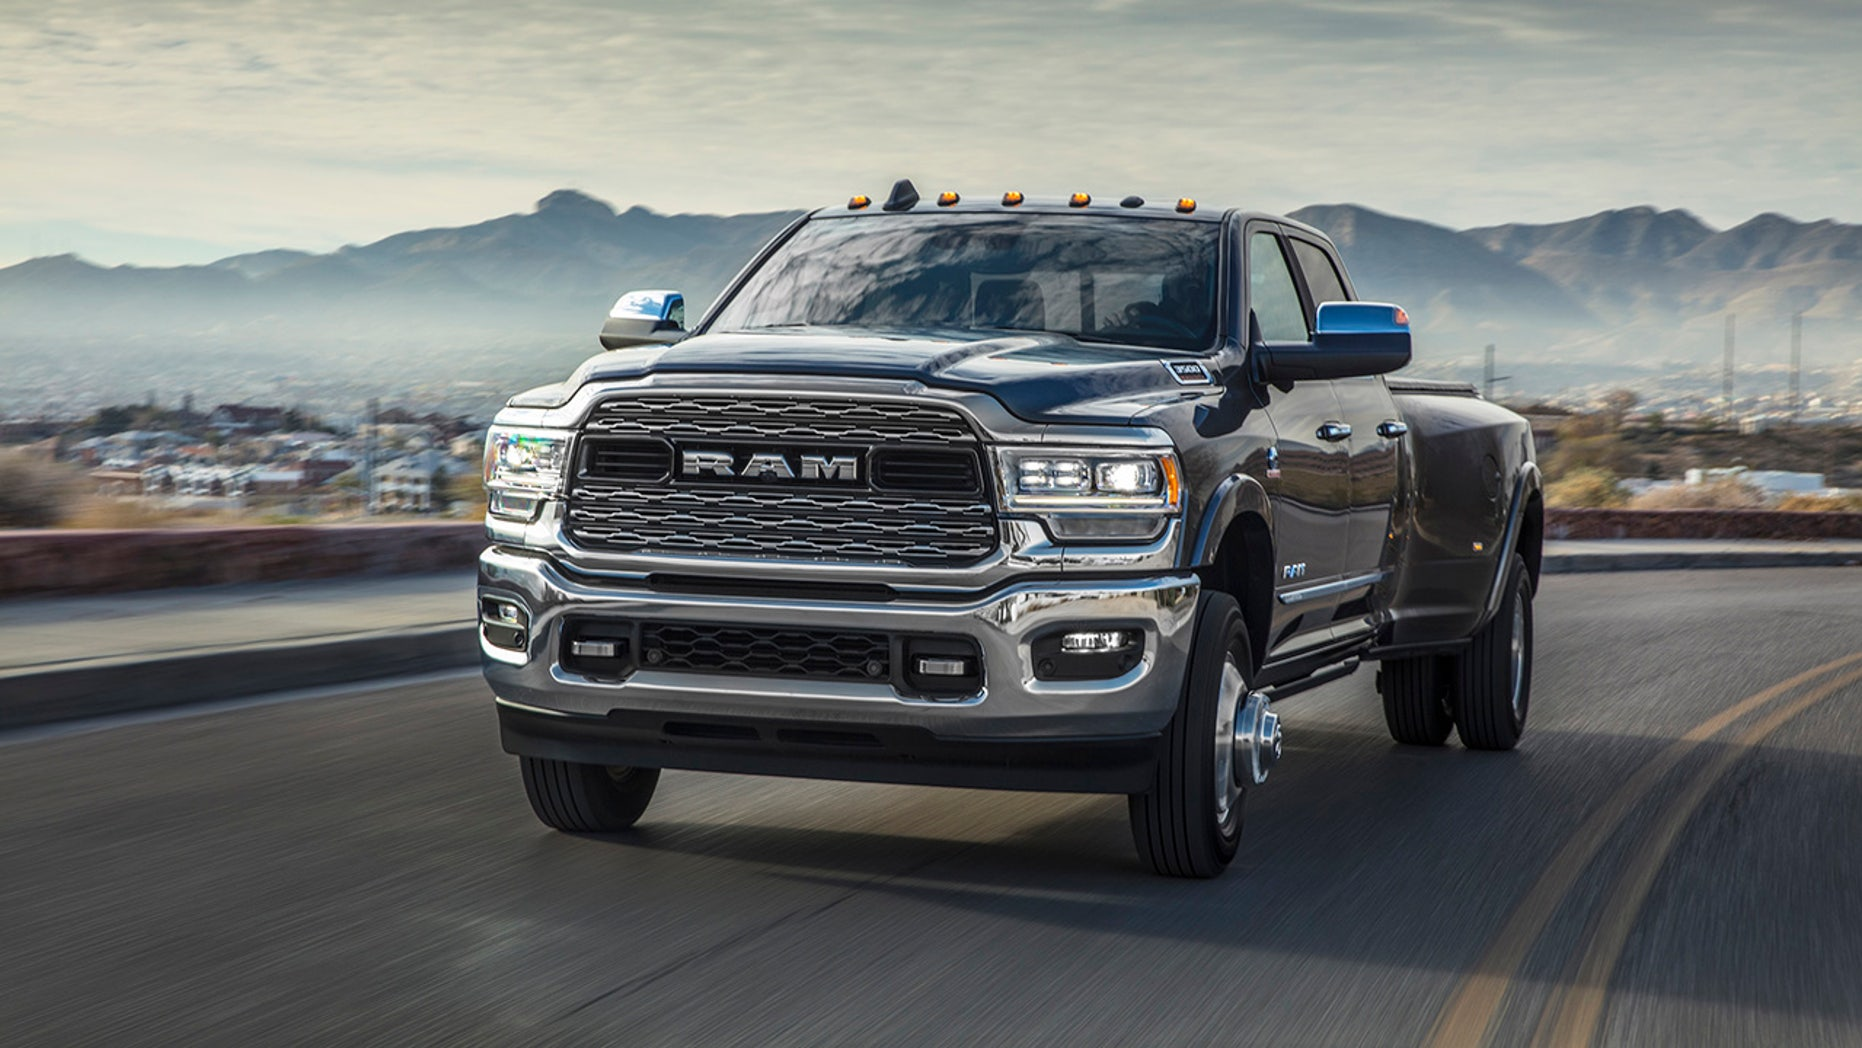 Heavy-duty 2019 Ram 2500, 3500 pickup trucks unveiled at Detroit auto show